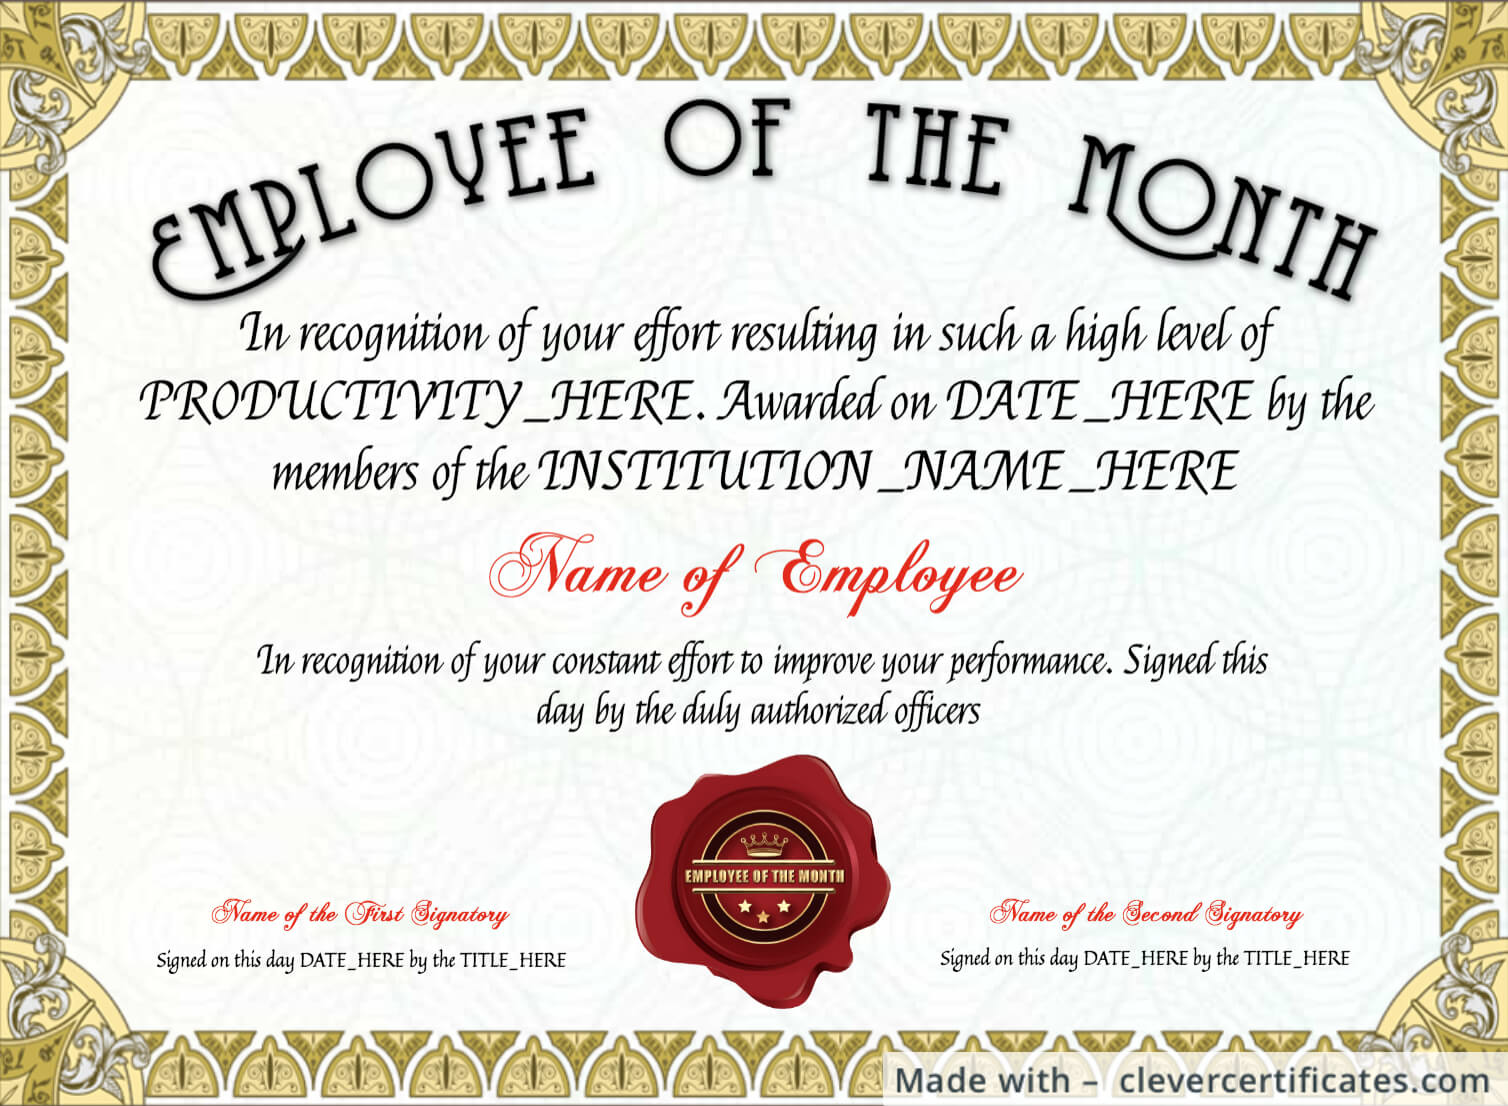 Free Employee Of The Month Certificate Template At Regarding Employee Of The Month Certificate Template